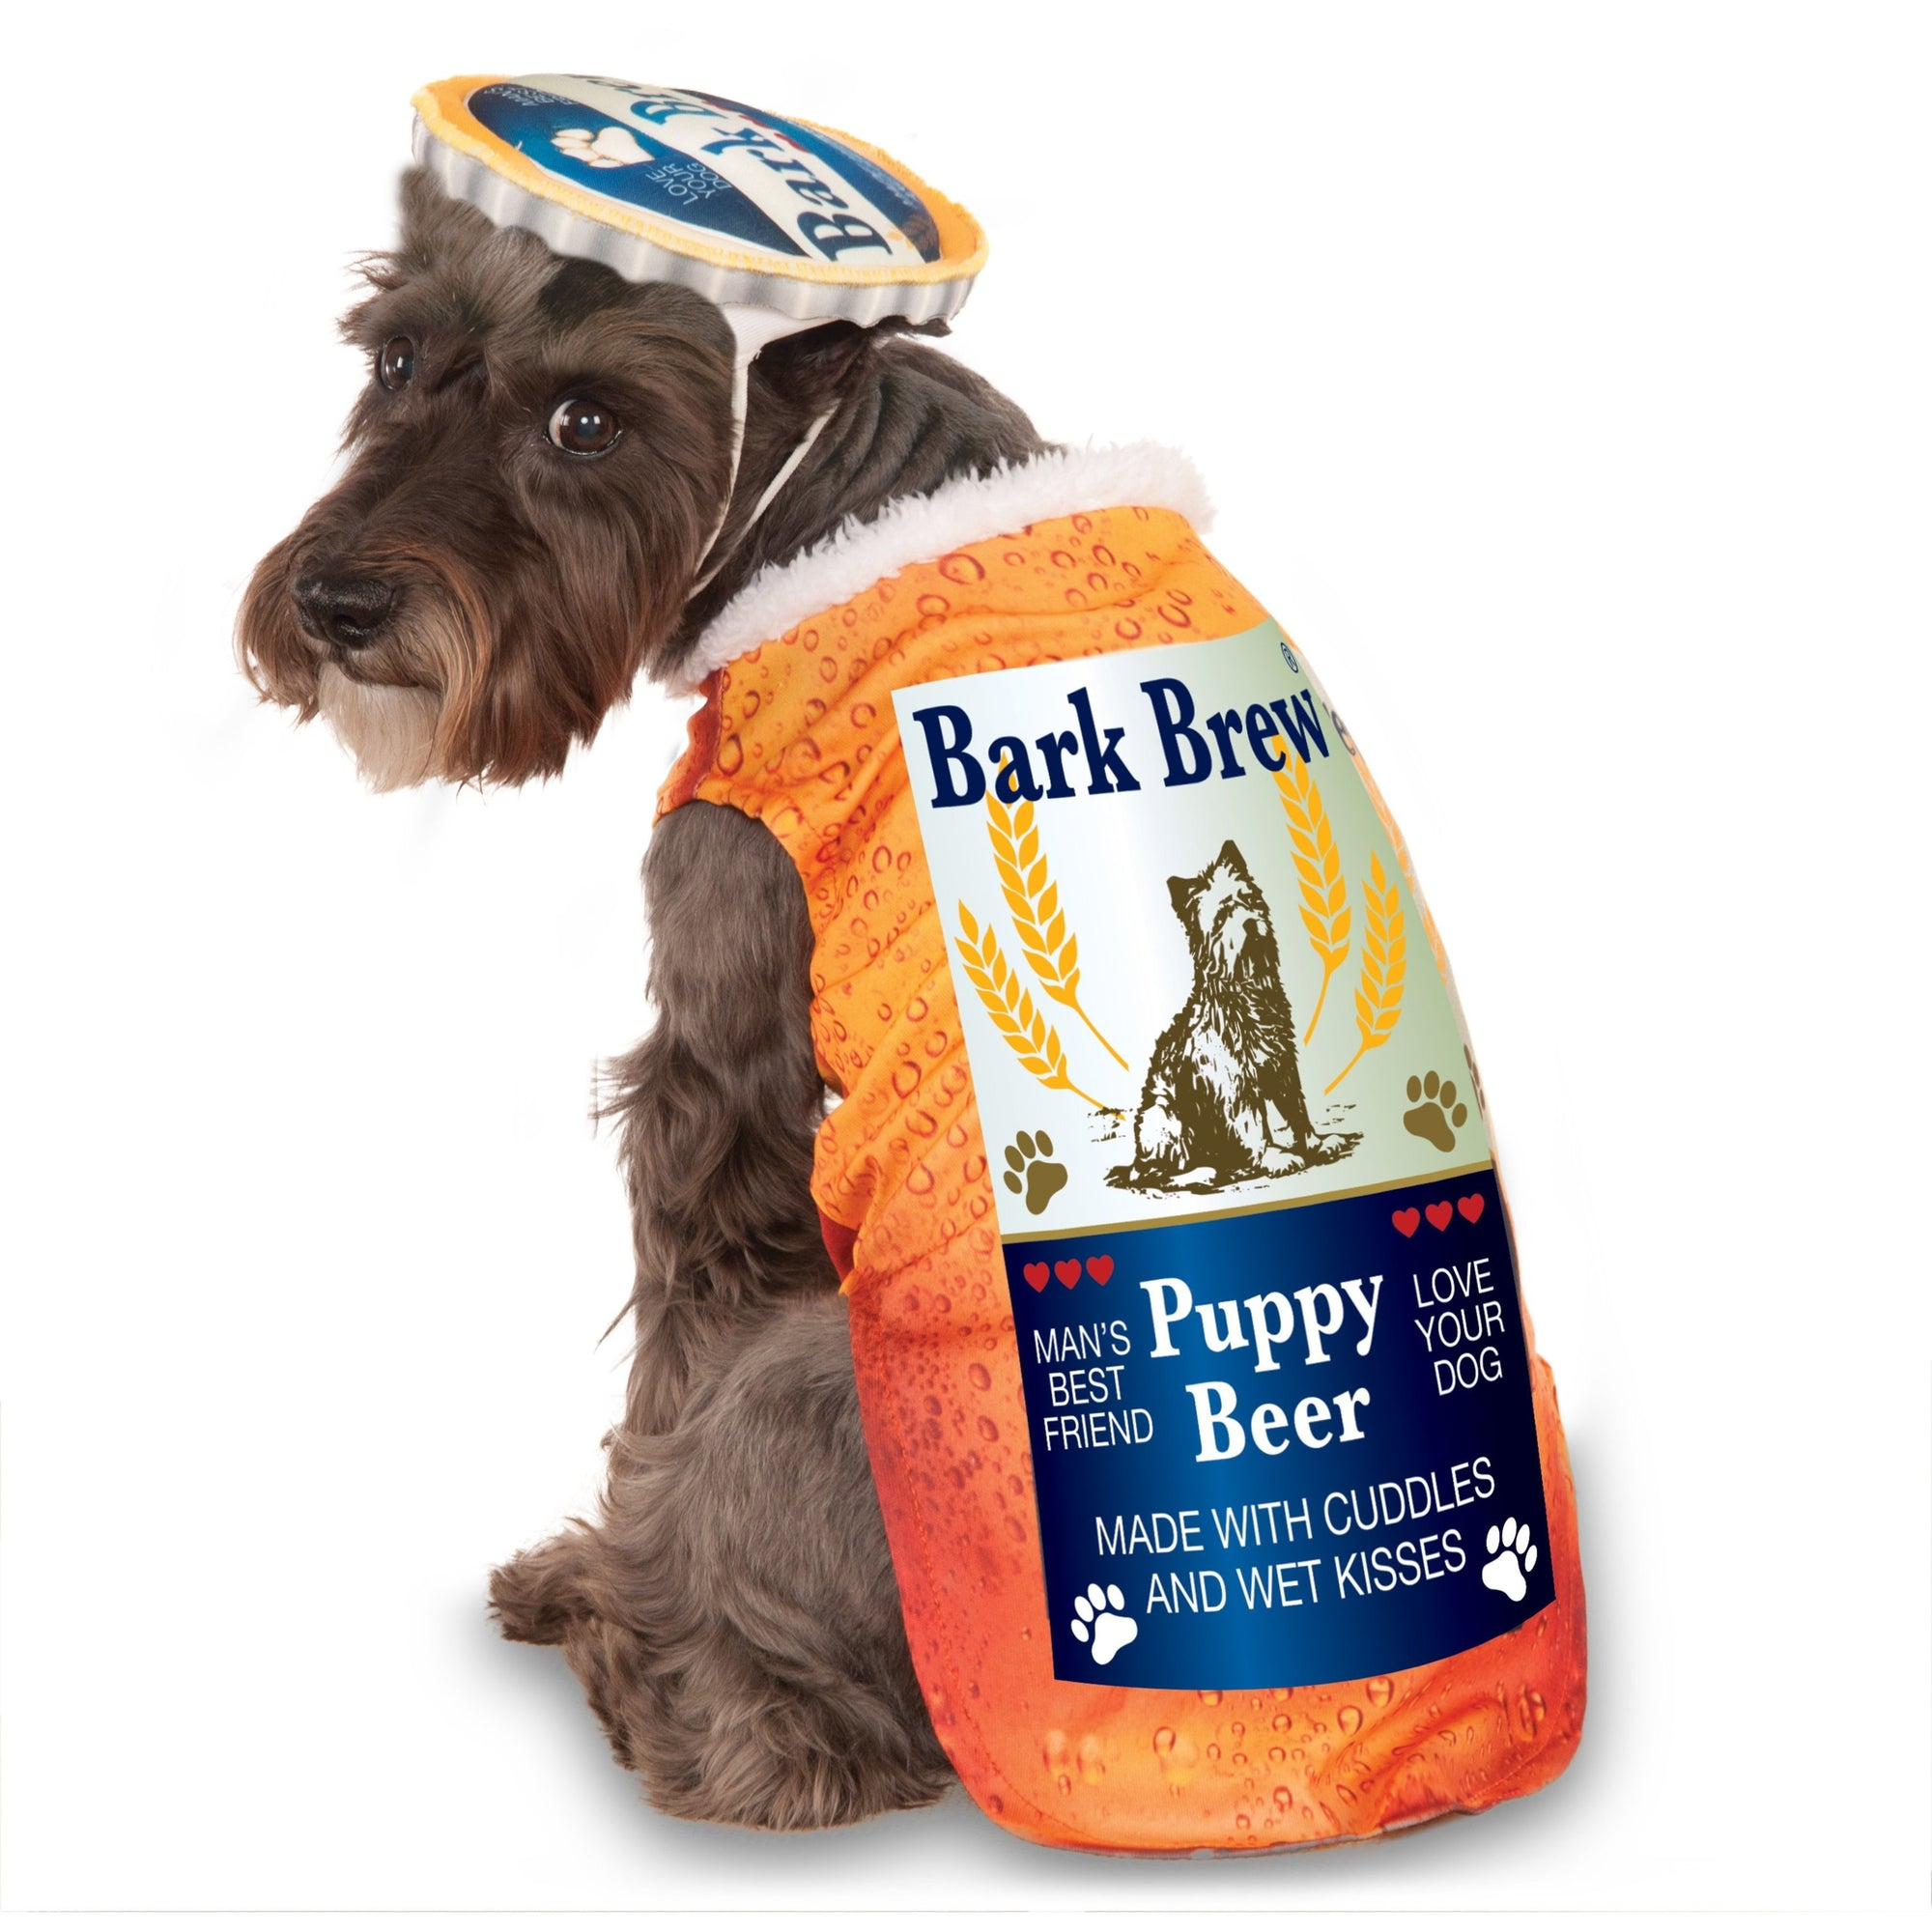 Bark Brew Beer Bottle Pet Costume